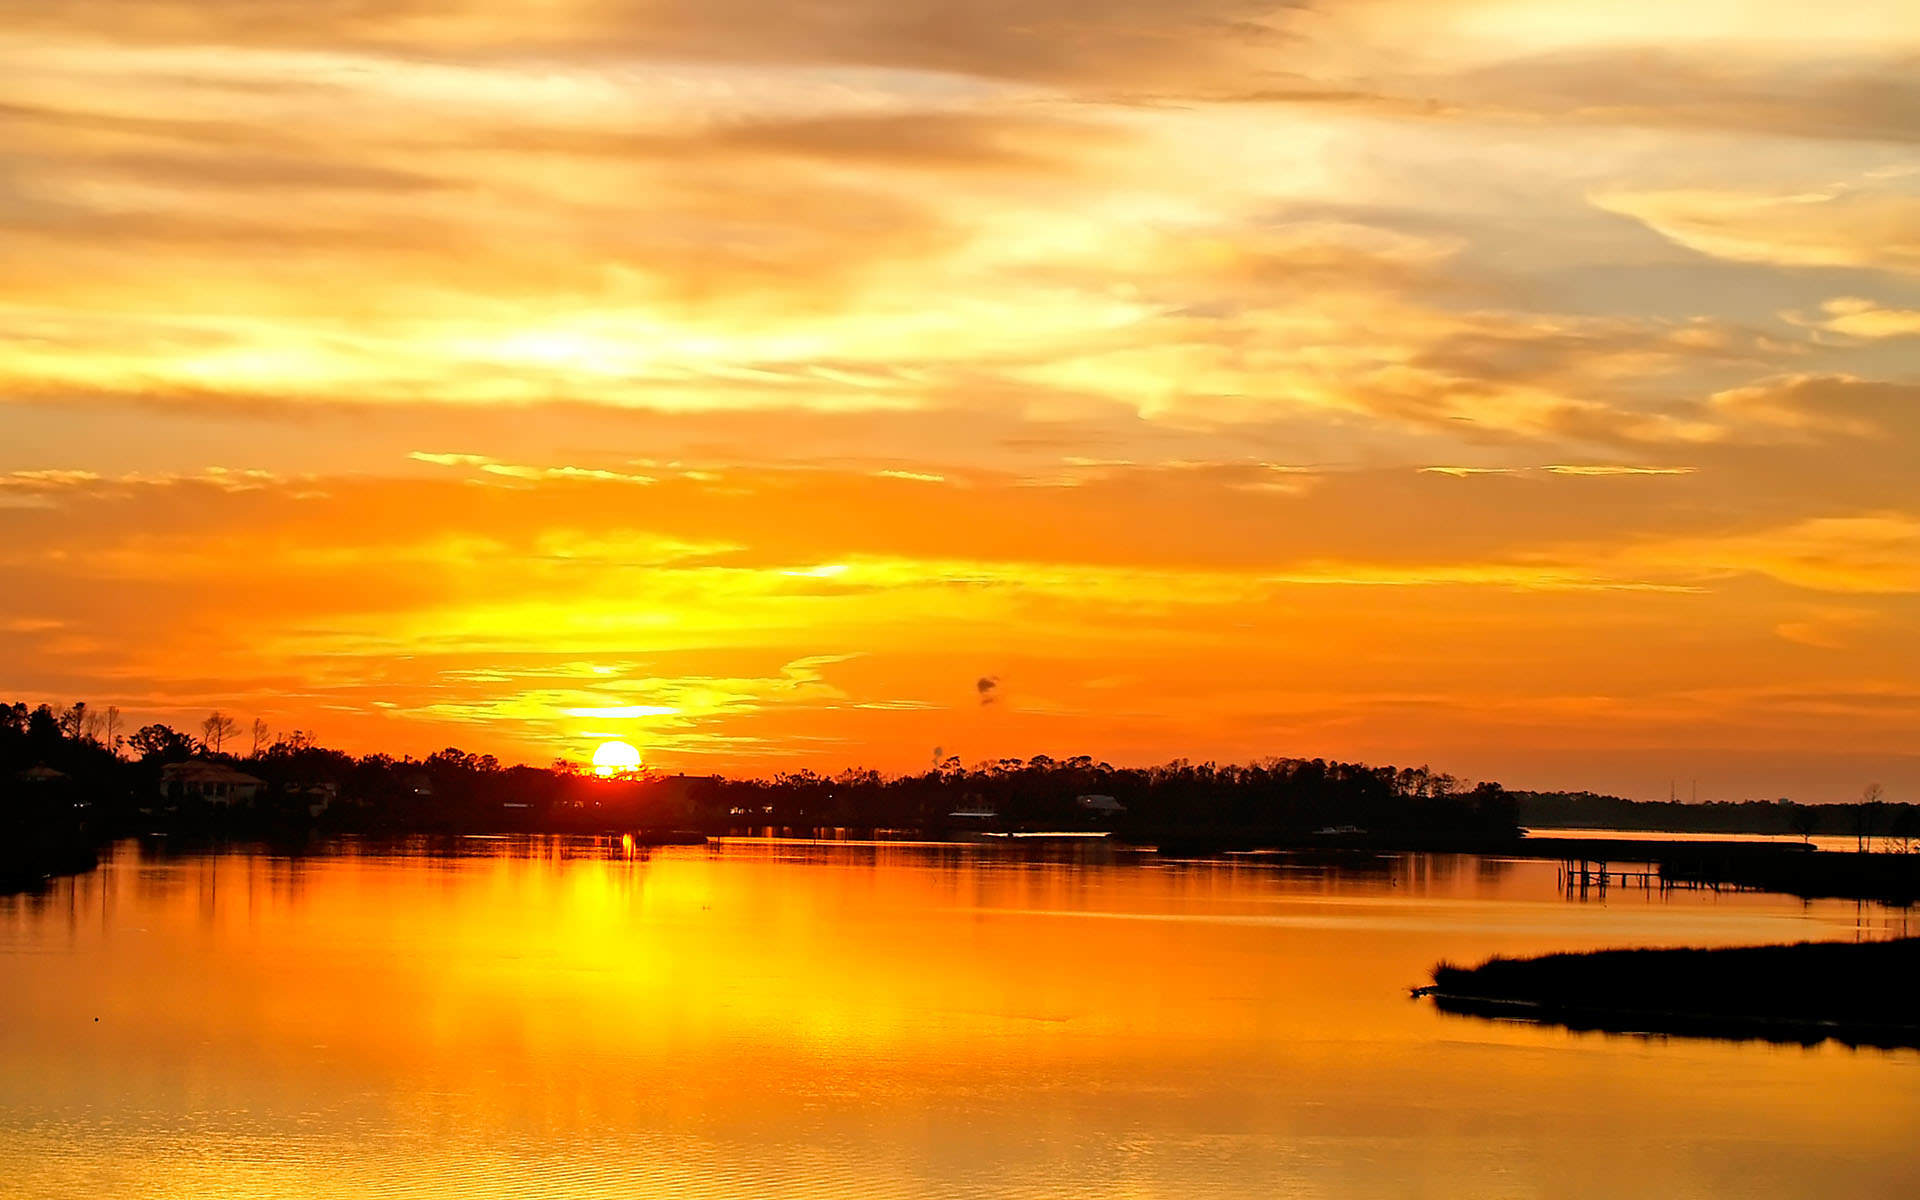 sunset wallpaper wallpapers 1920x1200 1920x1200